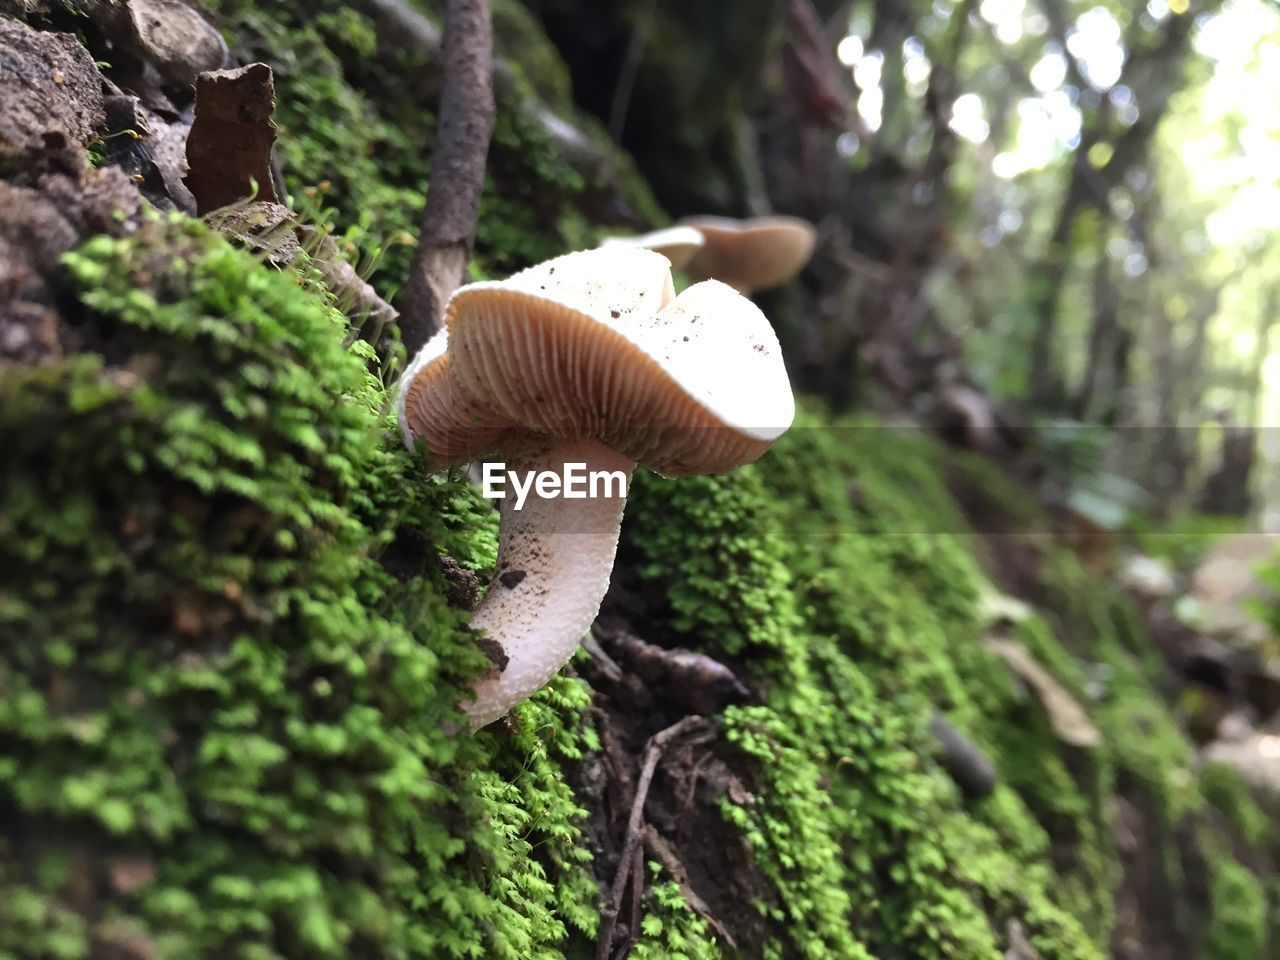 mushroom, fungus, vegetable, plant, tree, toadstool, growth, forest, land, food, beauty in nature, nature, edible mushroom, close-up, day, fly agaric mushroom, trunk, tree trunk, no people, focus on foreground, outdoors, wild, surface level